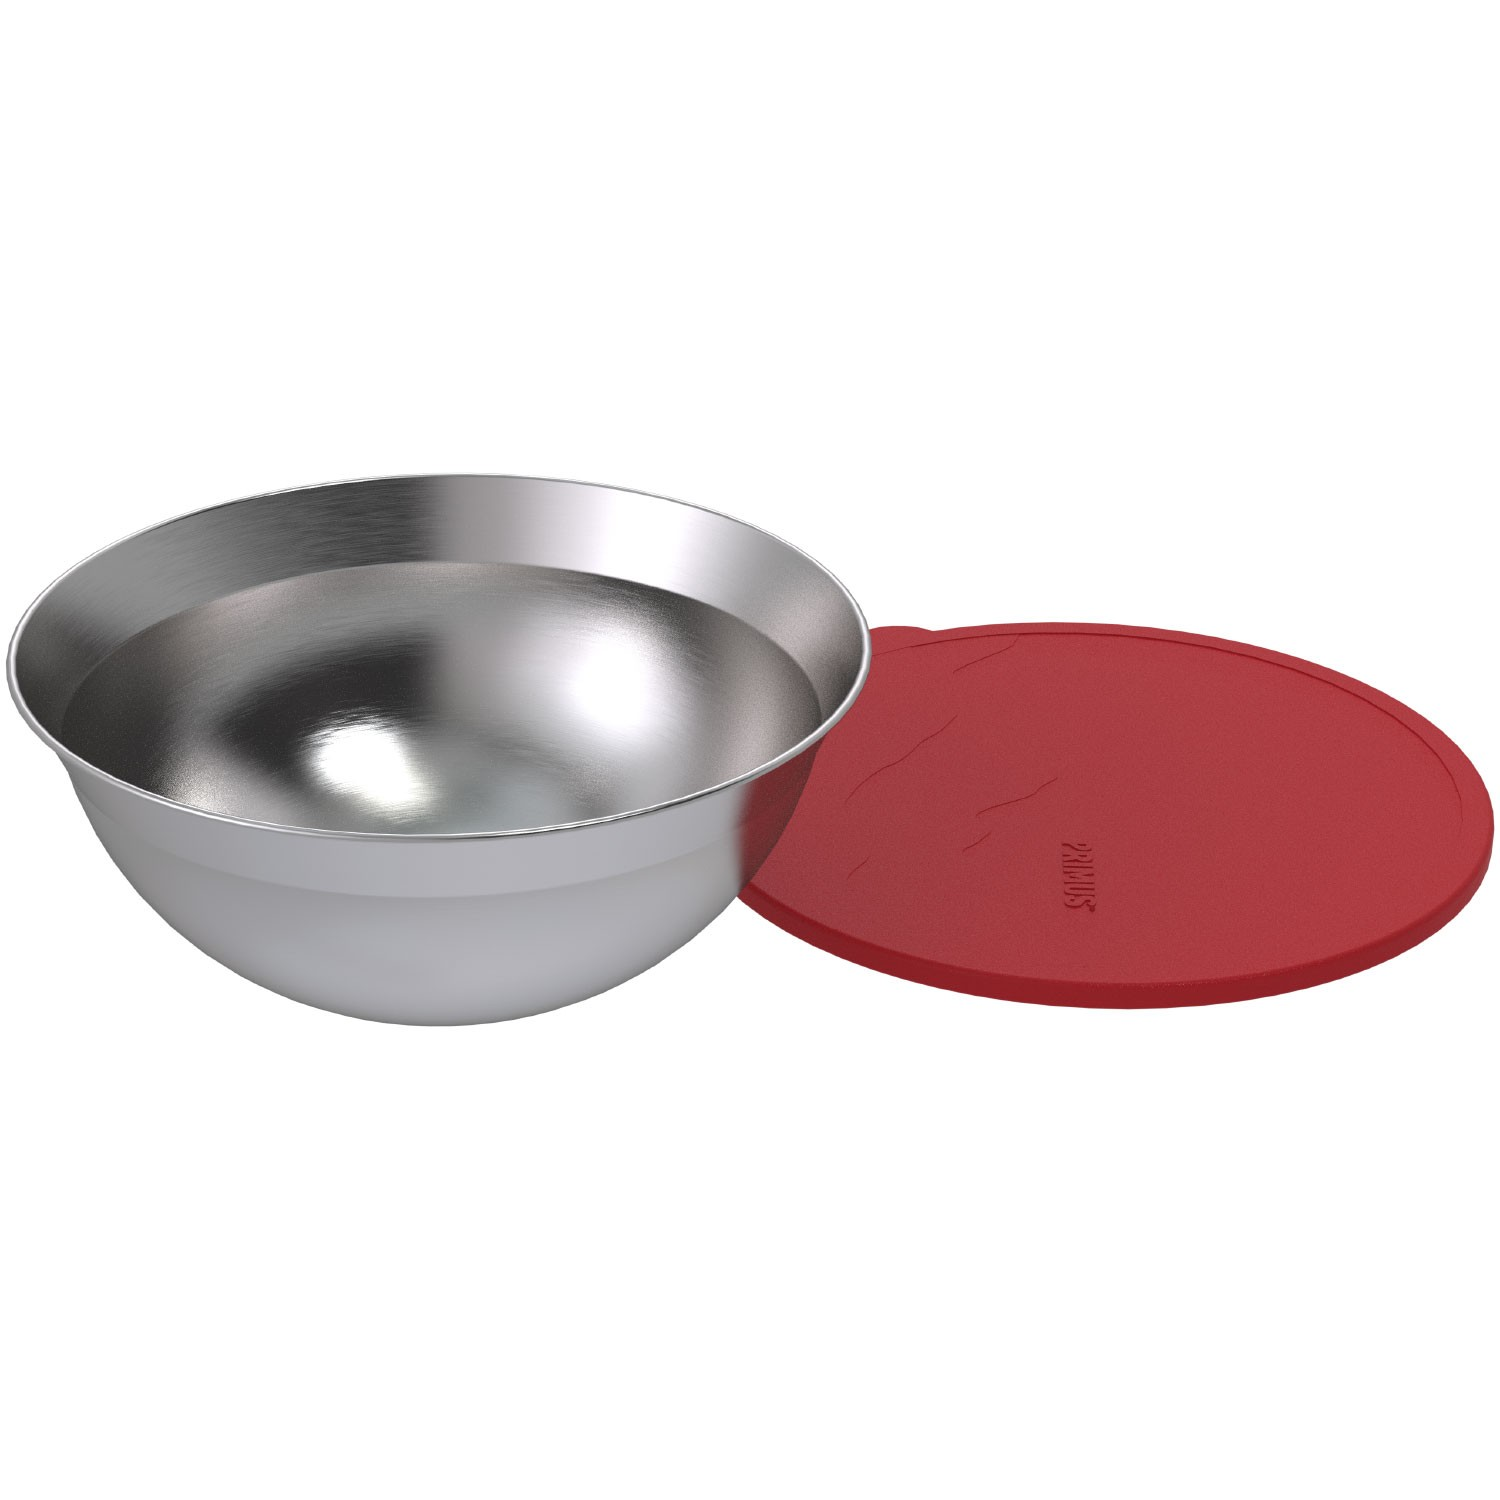 Primus Stainless Steel Campfire Bowl with Silicon Lid